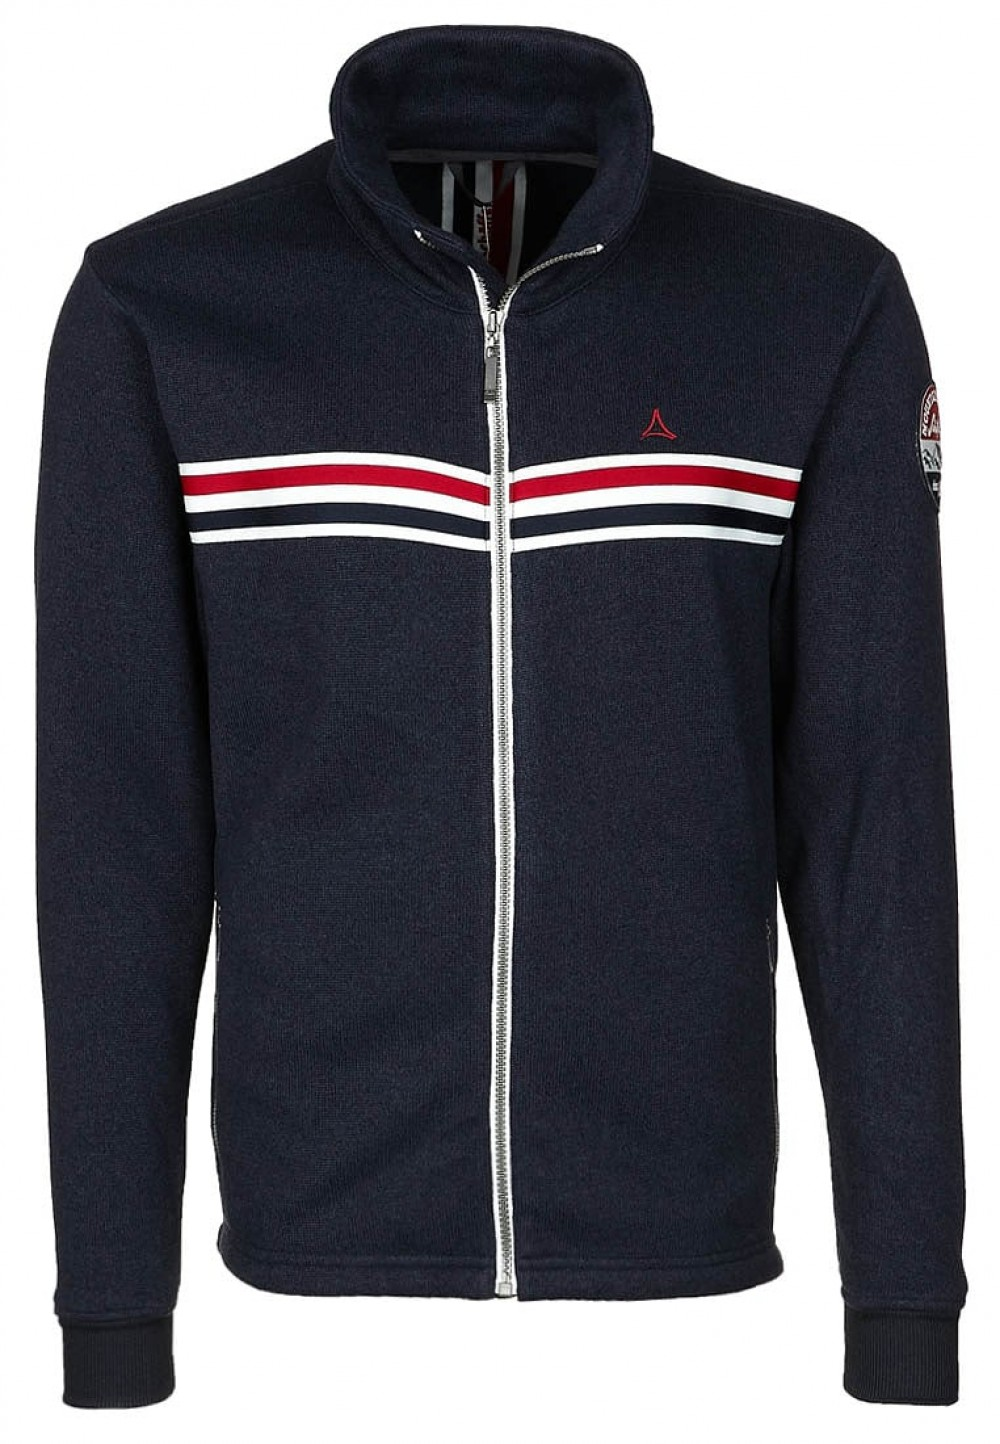 Кофта SCHOFFEL hank fleece jacket (размер 50/L) - 18497